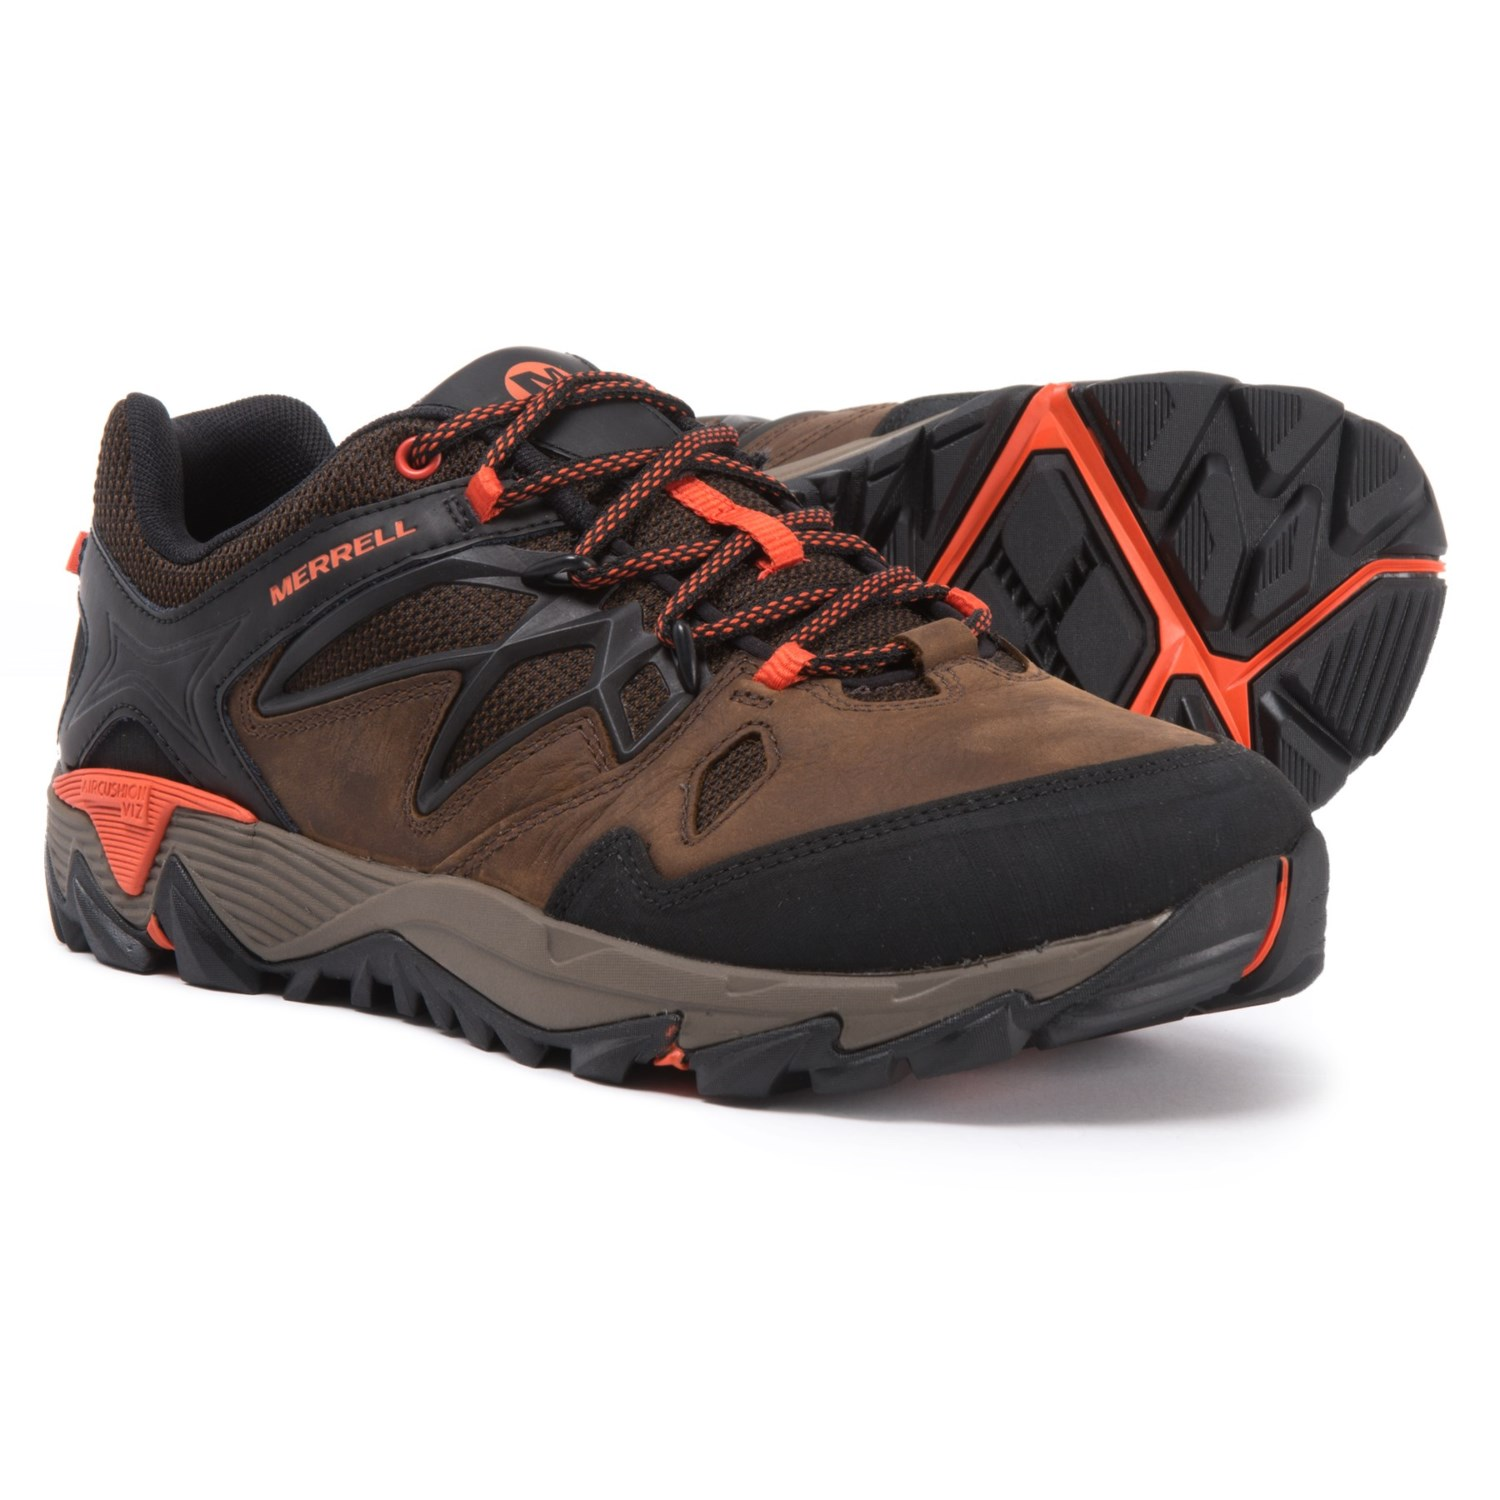 Merrell All Out Blaze 2 Hiking Shoes (For Men) - Save 53% d8ce36f8e6